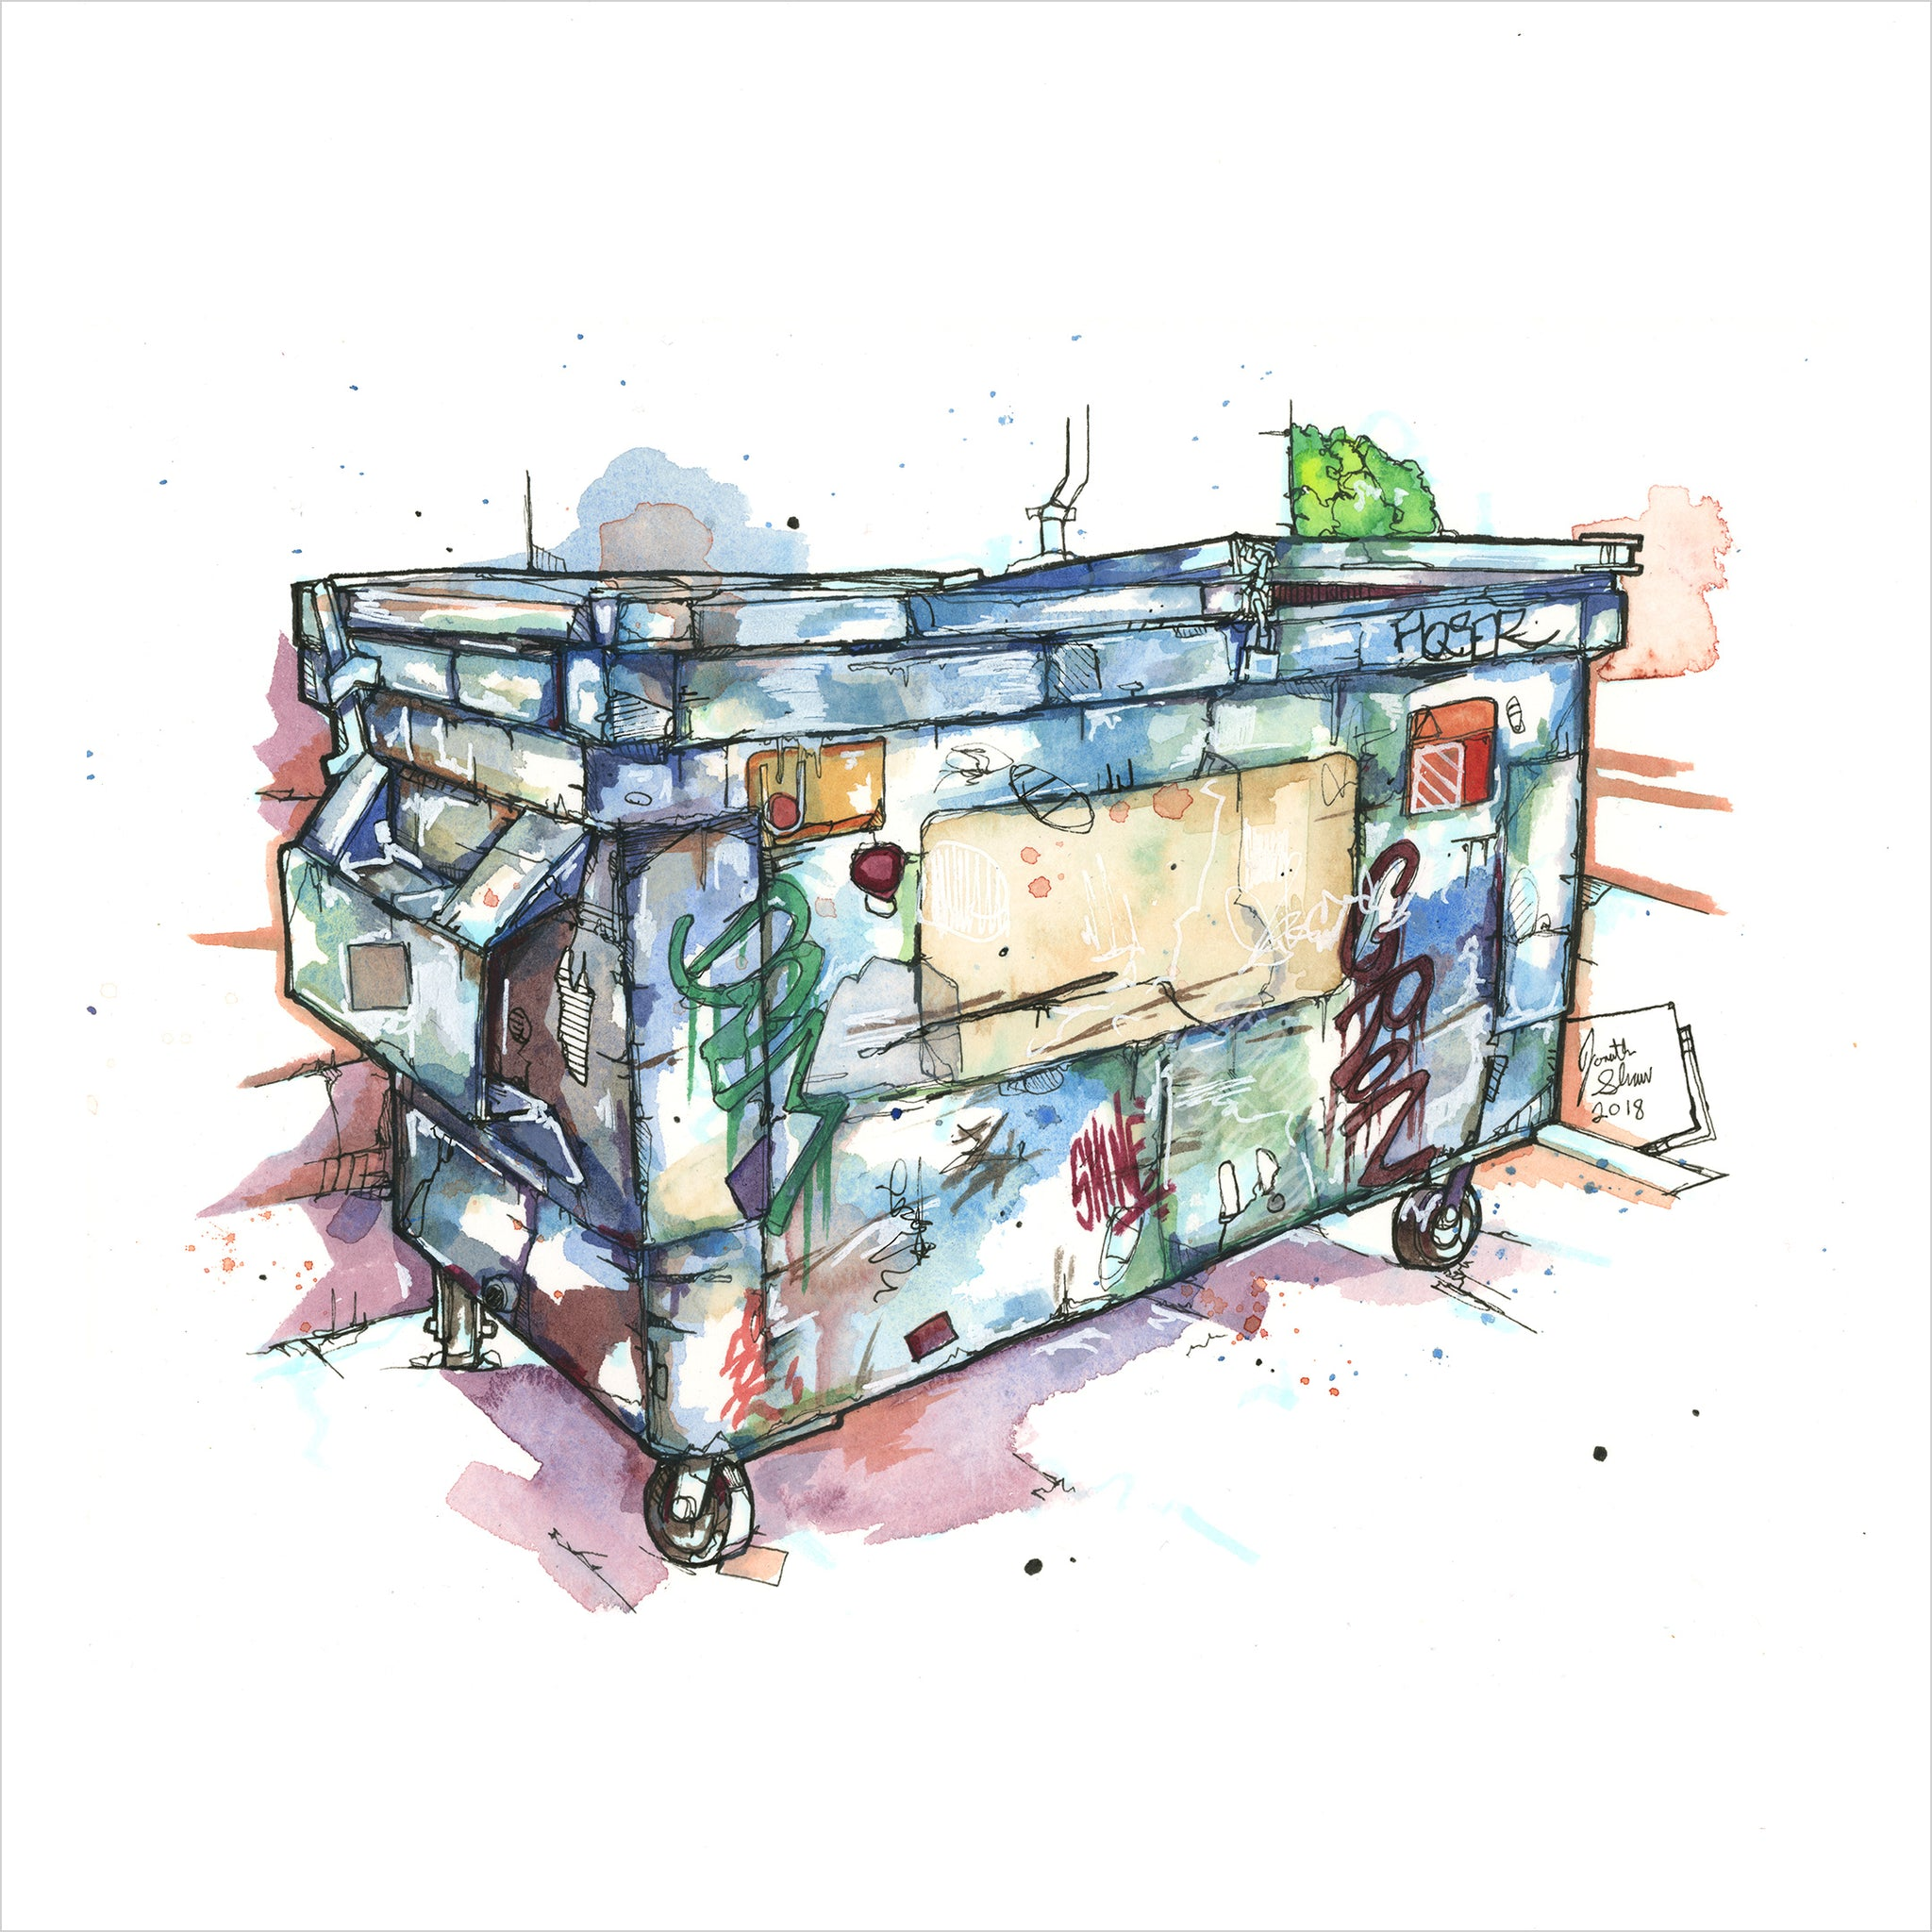 """Blue Dumpster"" - 8x10 Reproduction Print"